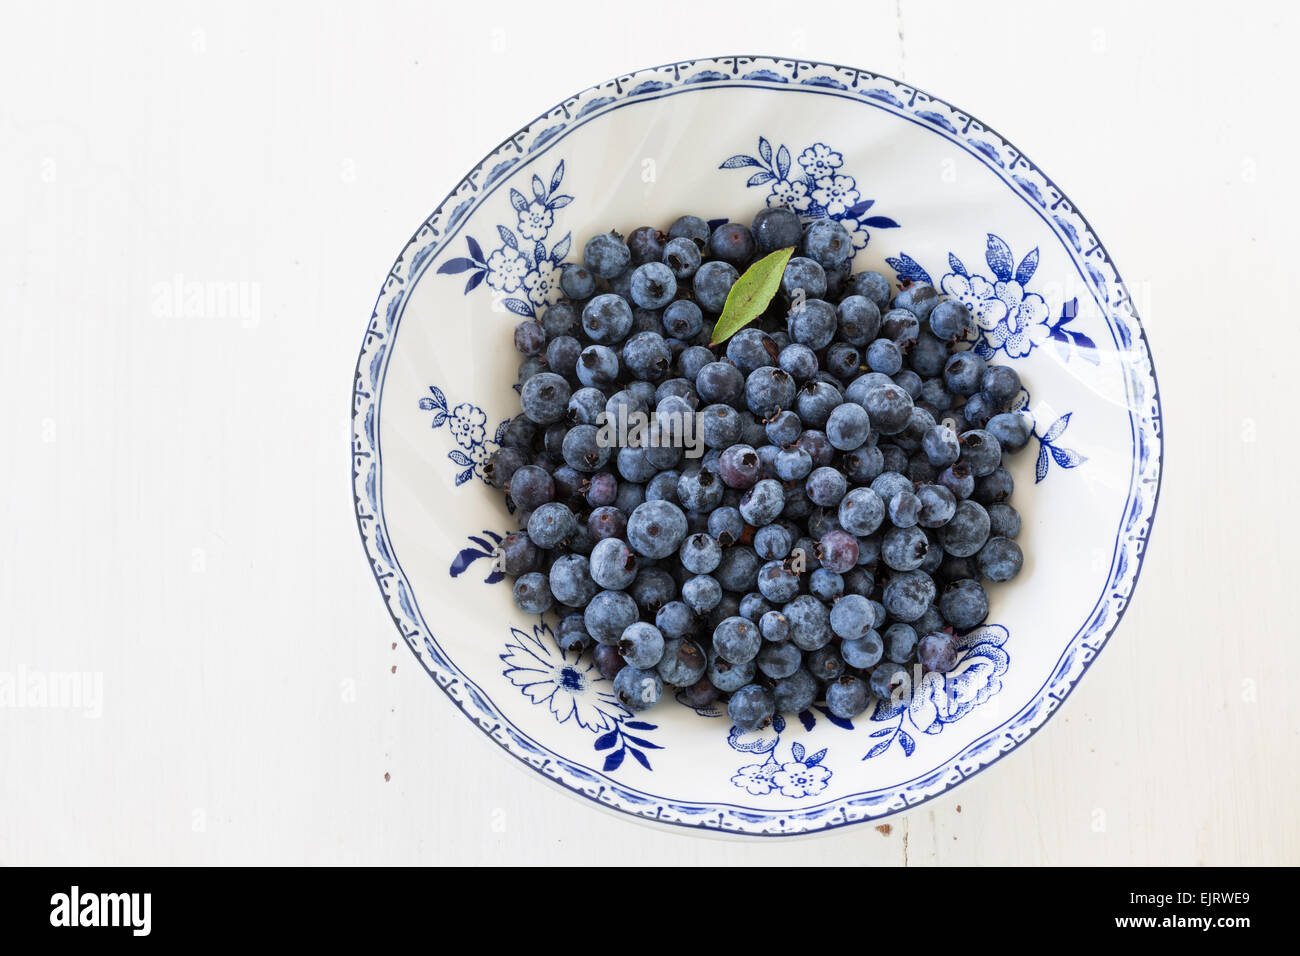 Wild blueberries in a china bowl. - Stock Image